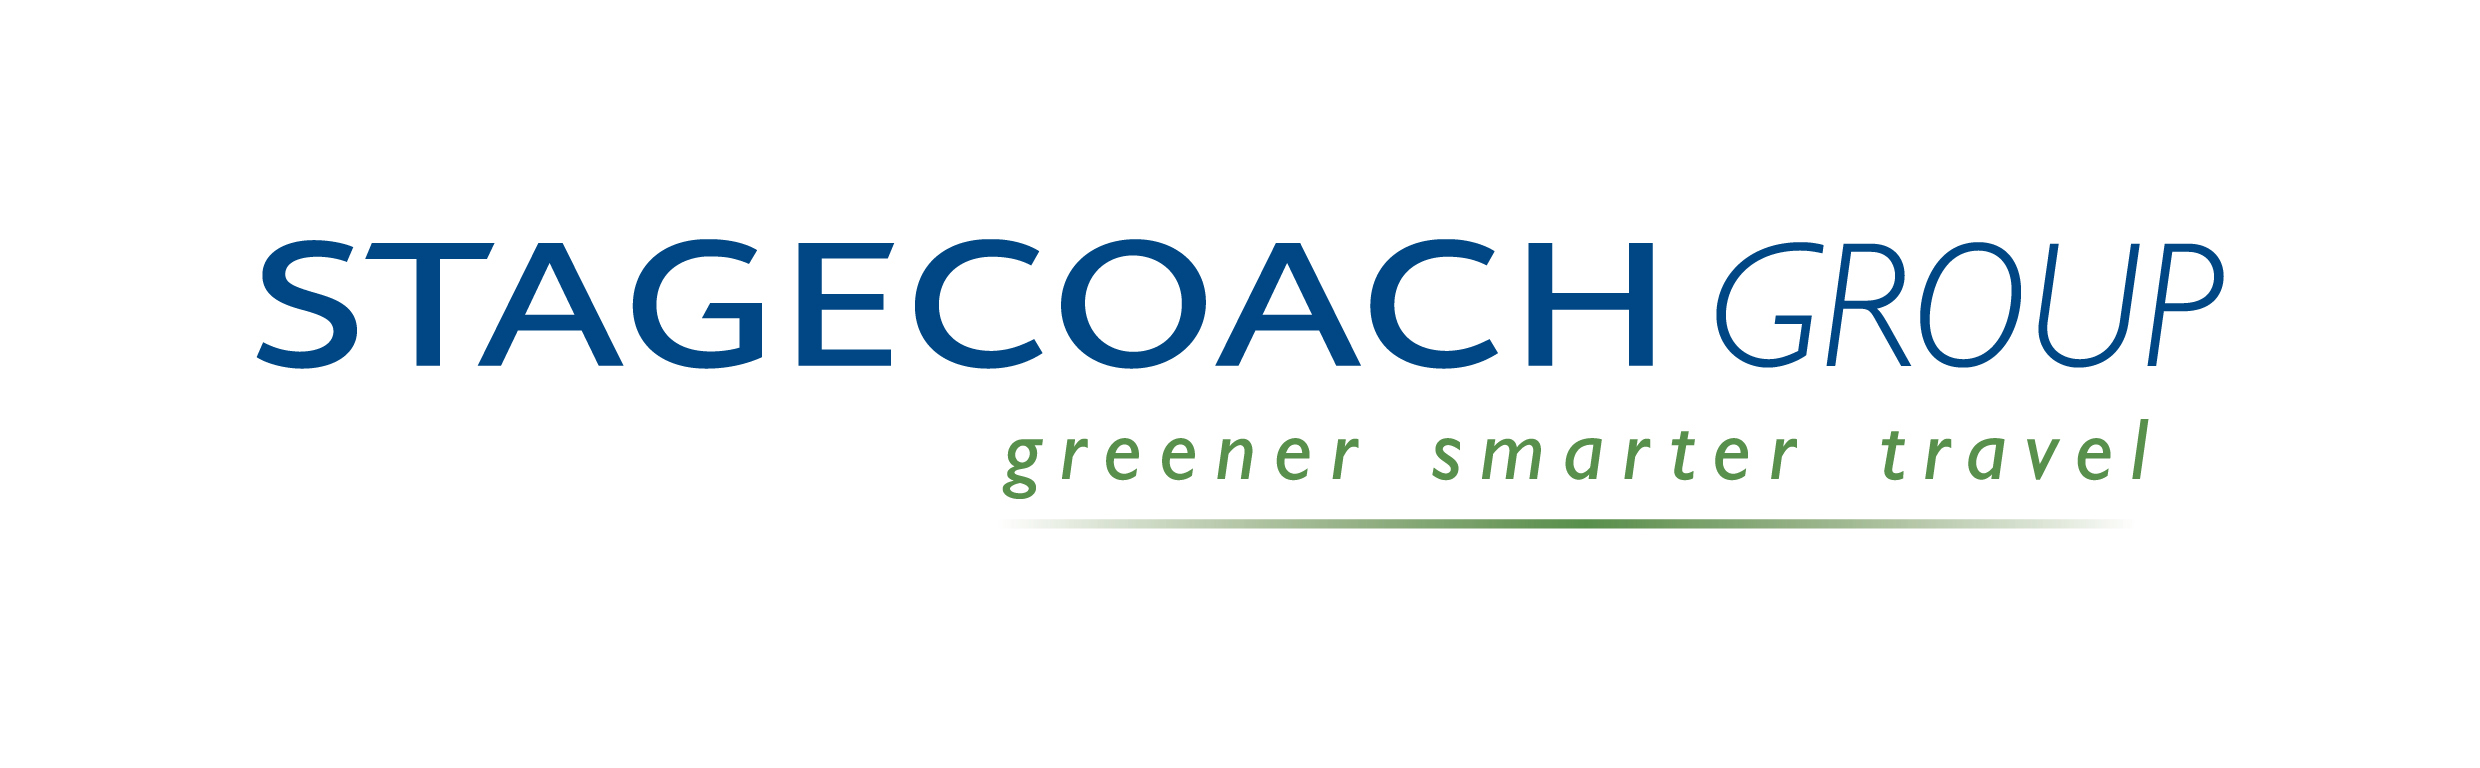 new stagecoach group logo with strapline.jpg